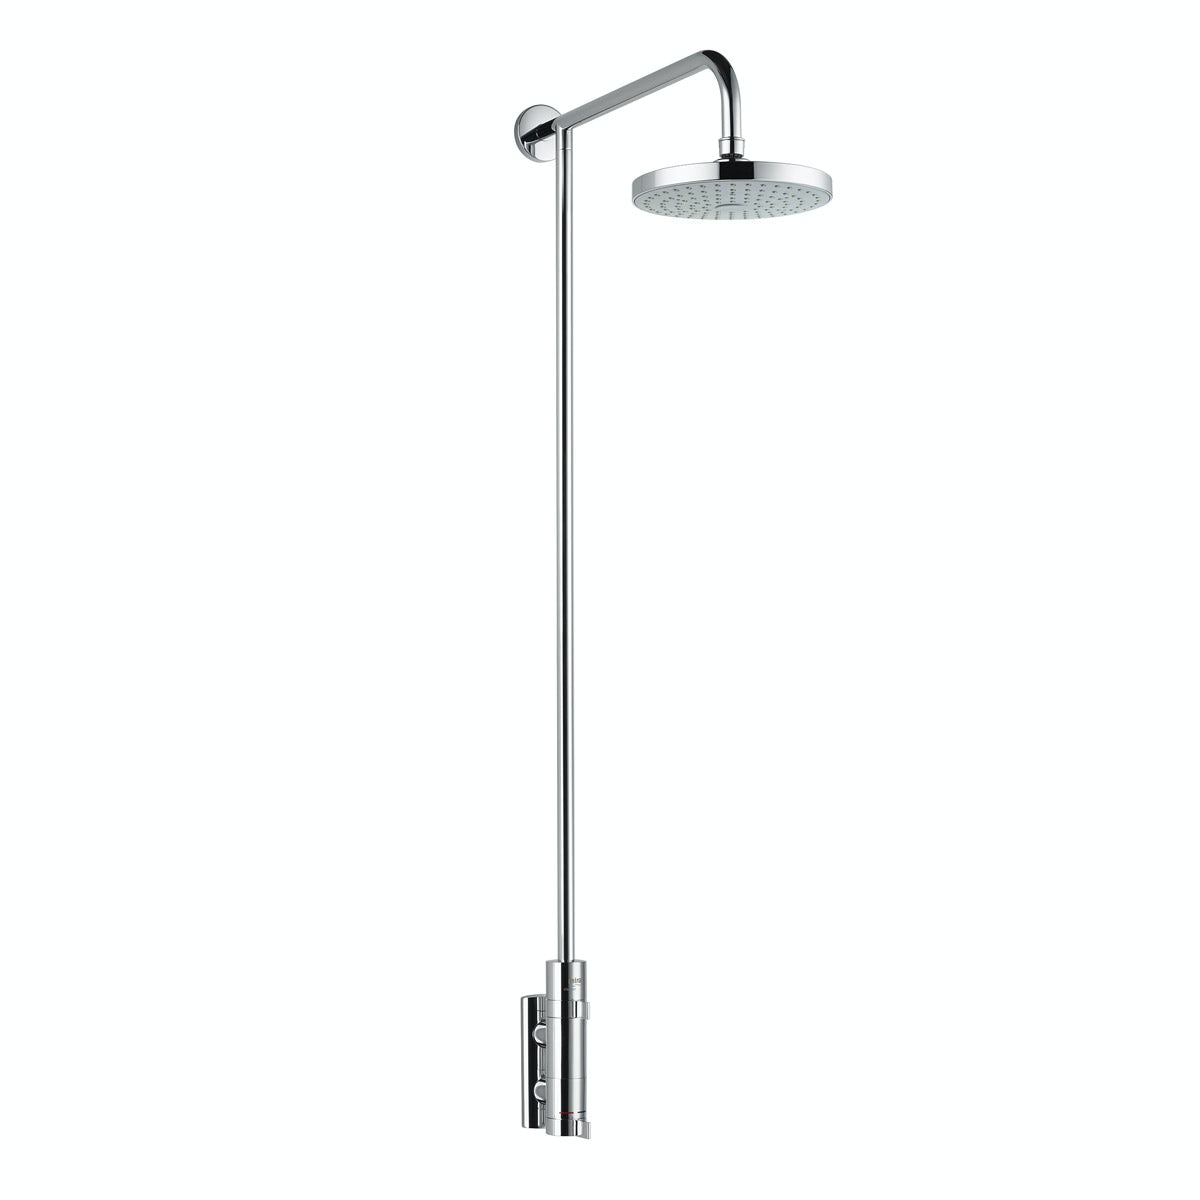 Mira Miniluxe ER thermostatic mixer shower